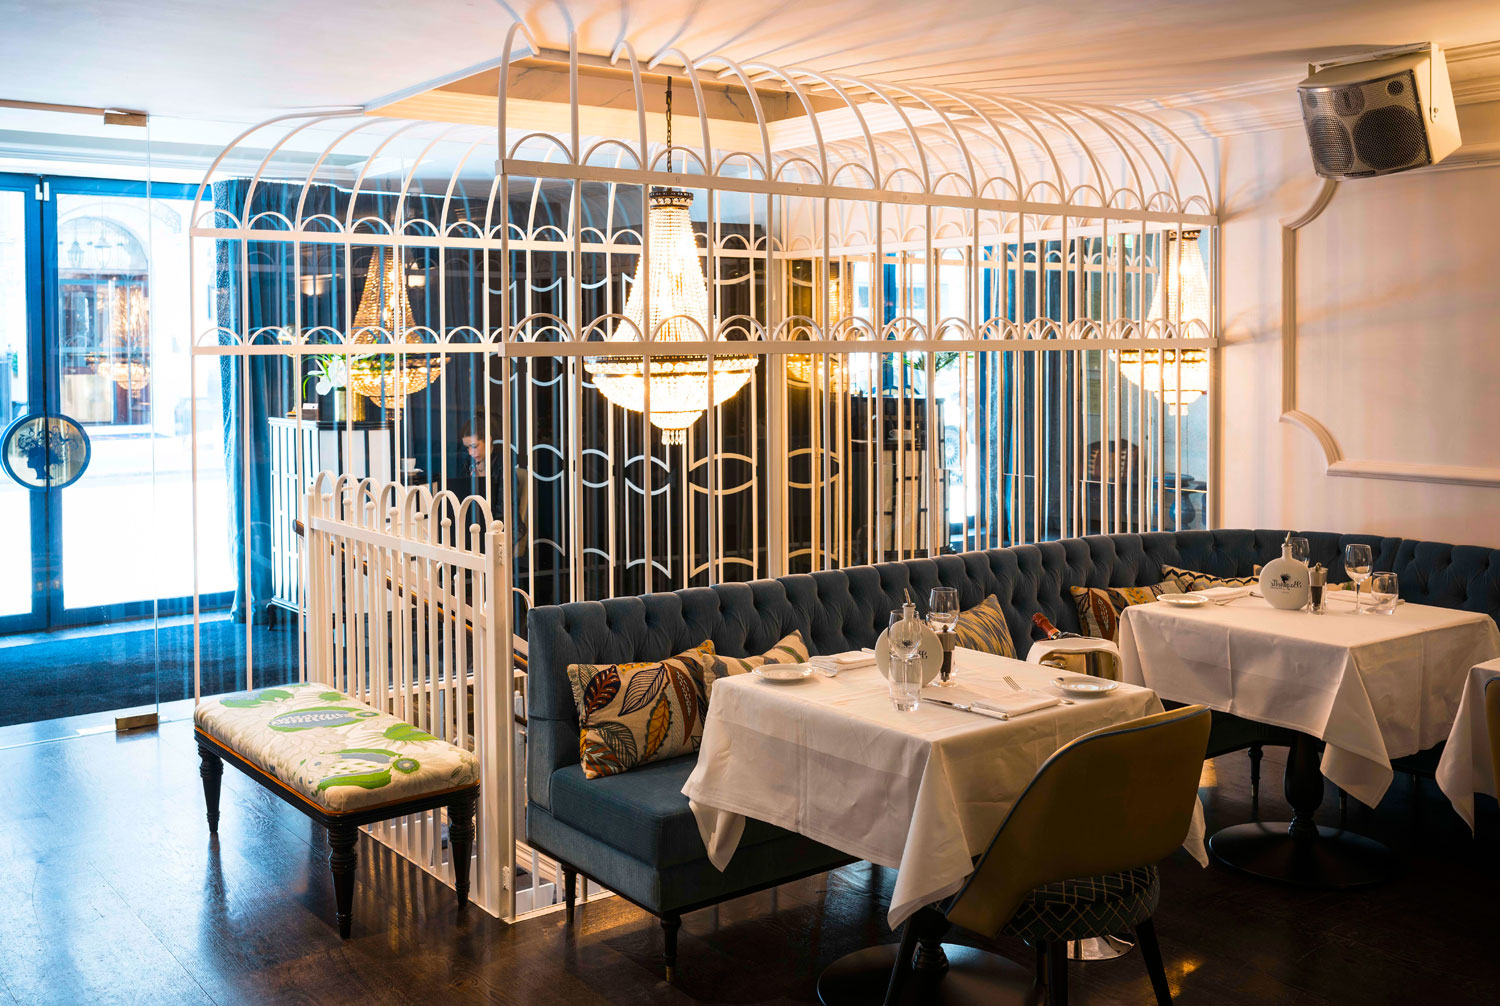 French Cuisine With Mayfair Flair For Brunch At Bagatelle 5